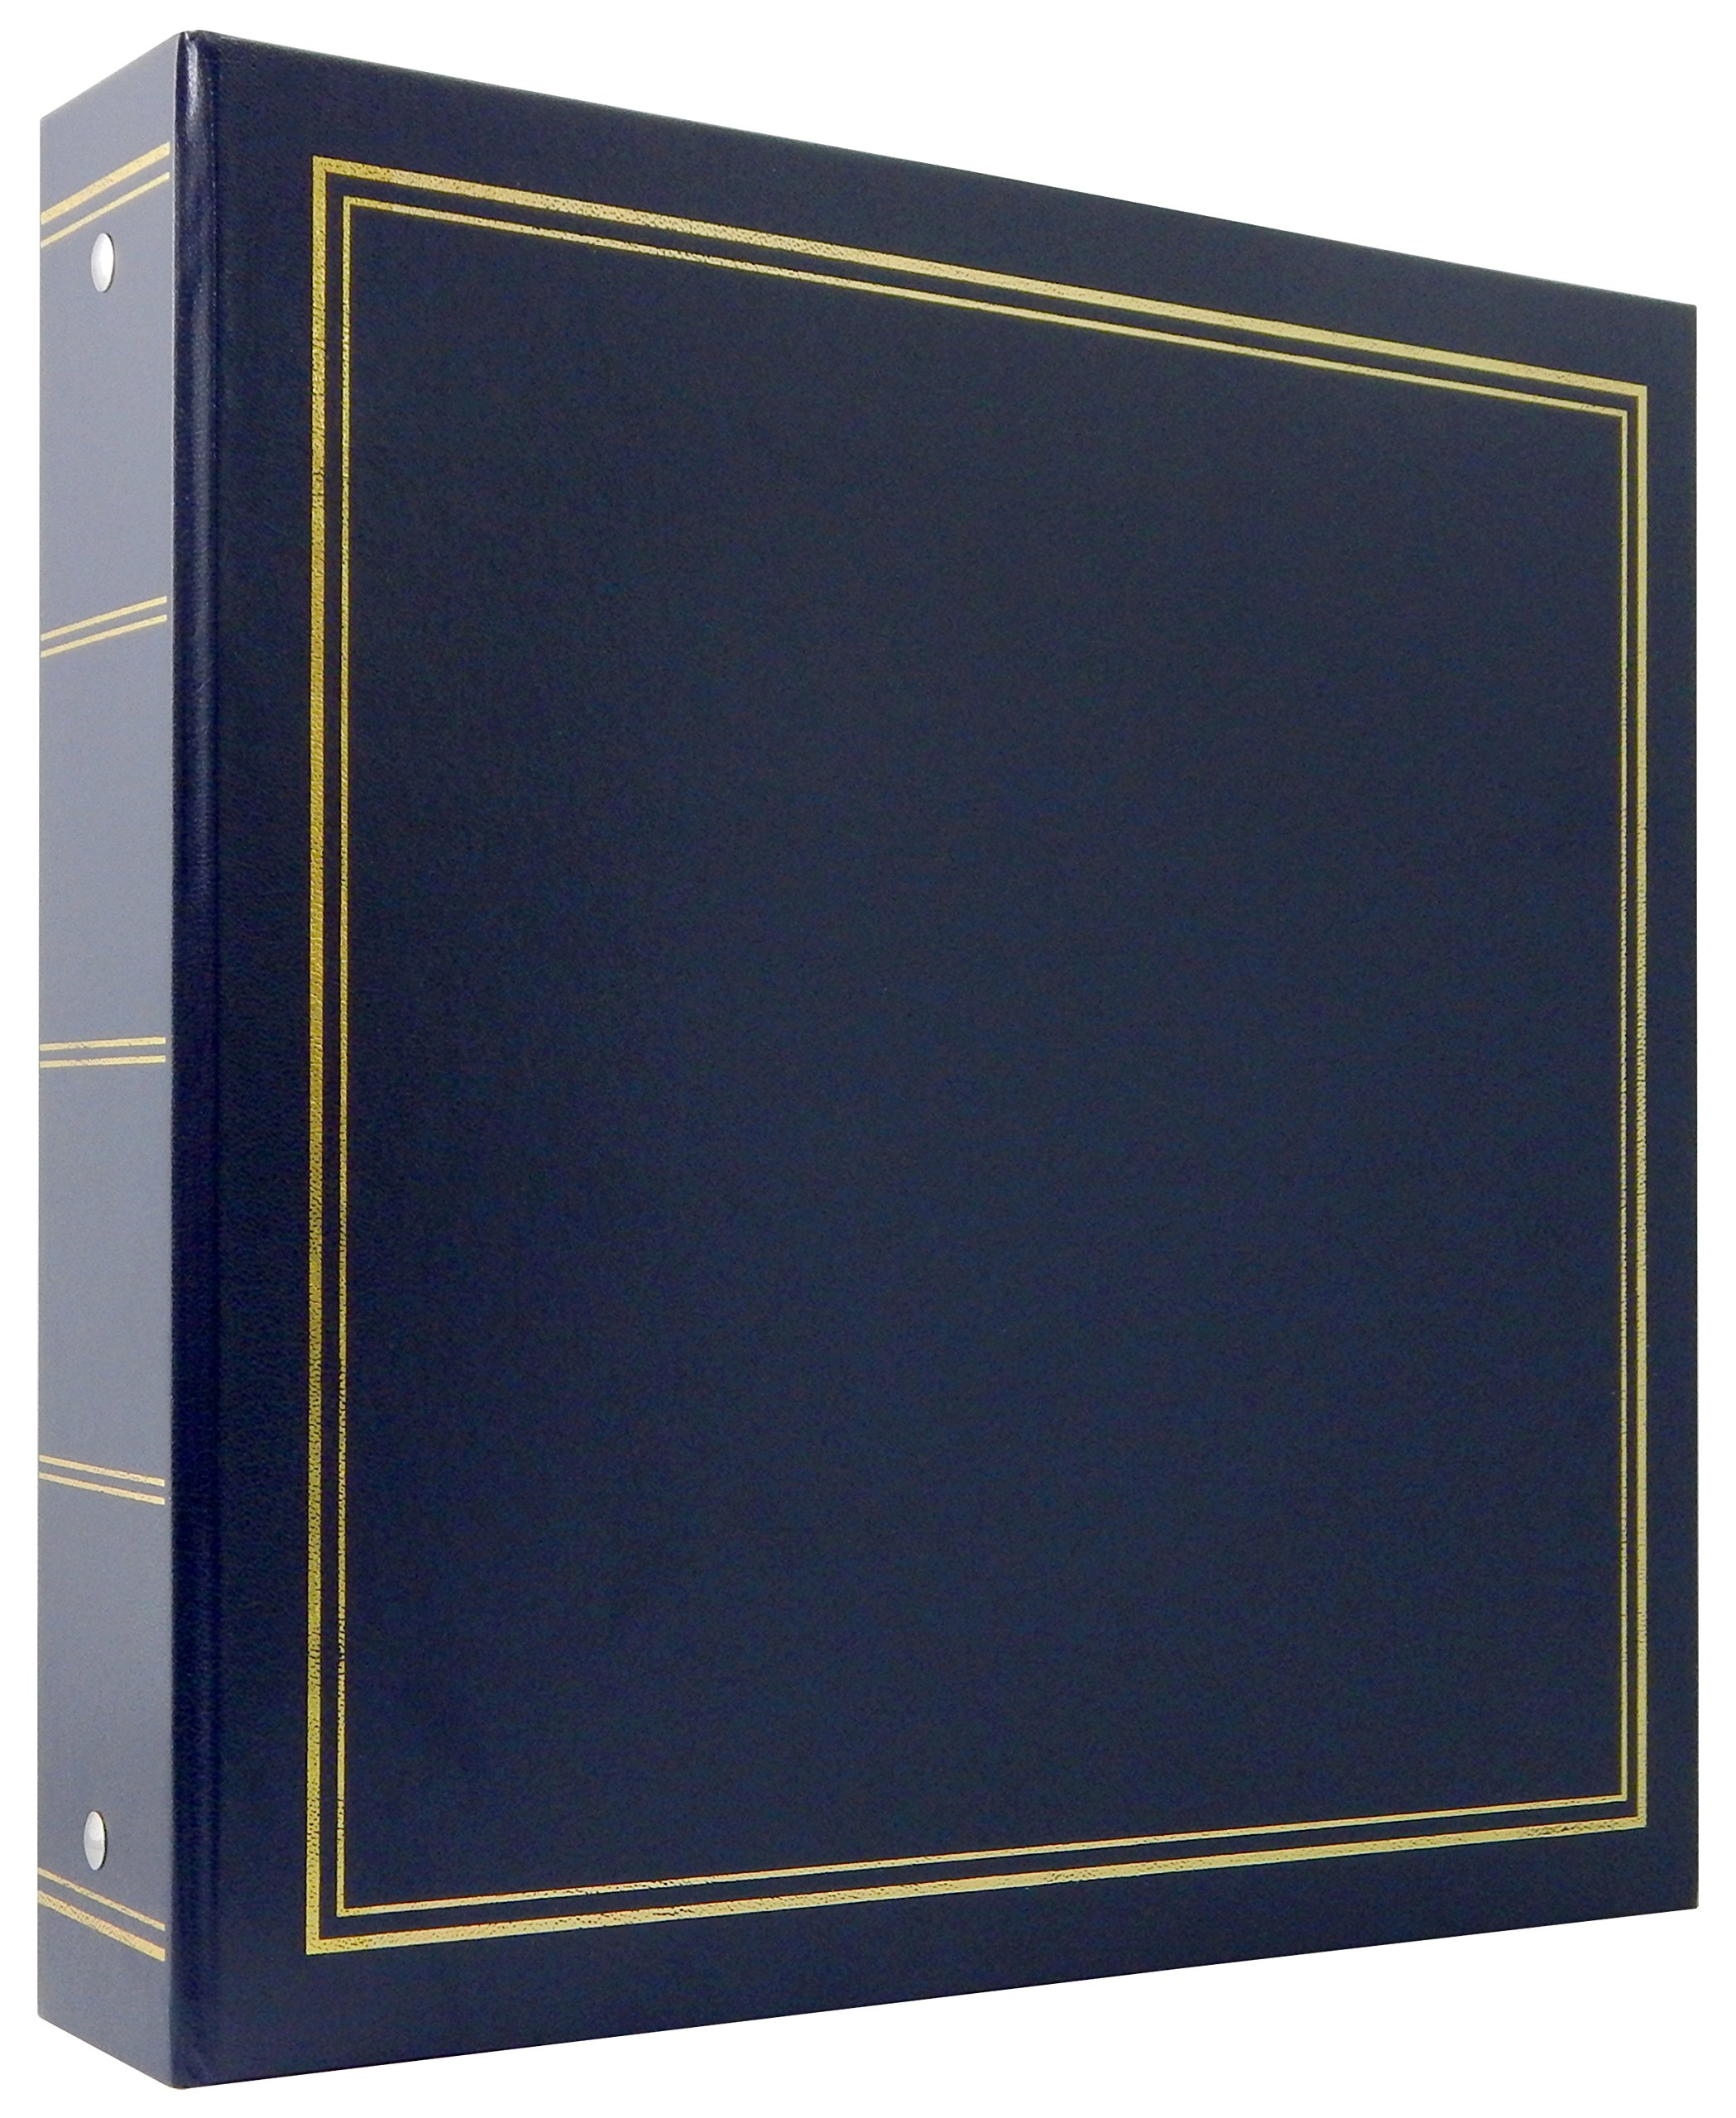 MBI Library Collection 400 Pocket 4x6 Inch Photo Album, Blue (804002) by MCS